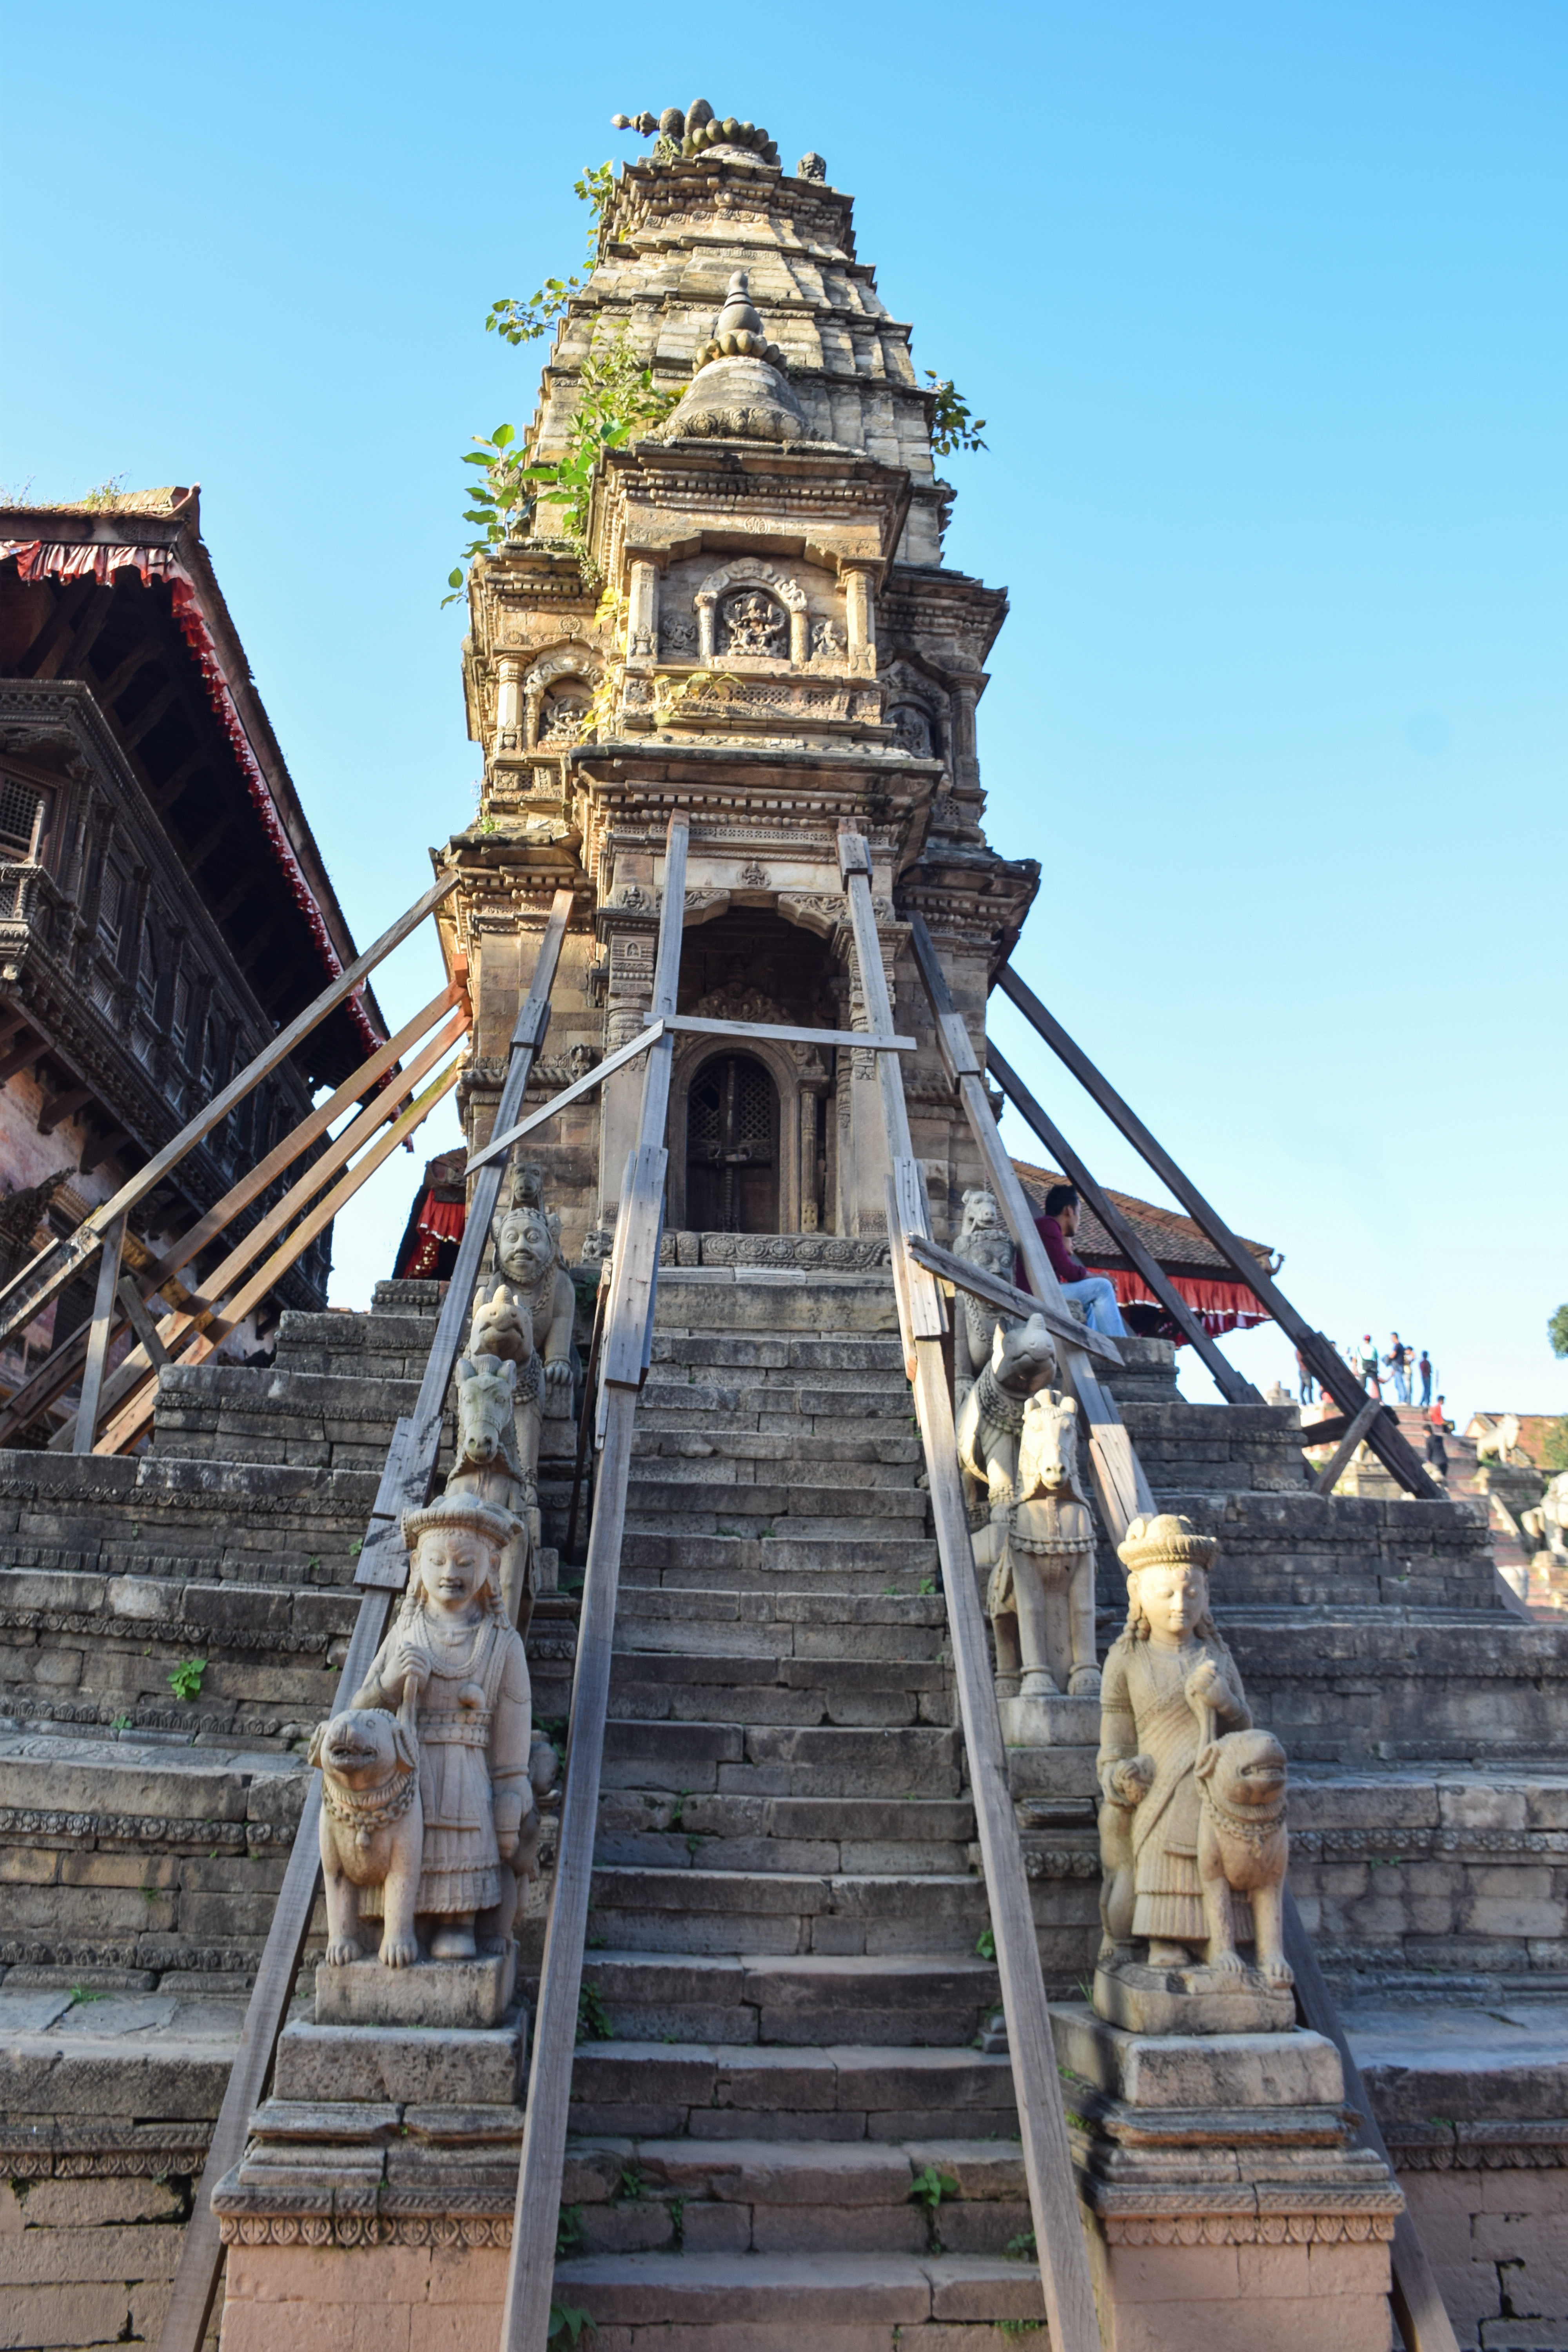 A Renovating Temple At Bhaktapur.jpg This file has no , and may be lacking other information. Please provide a meaningful